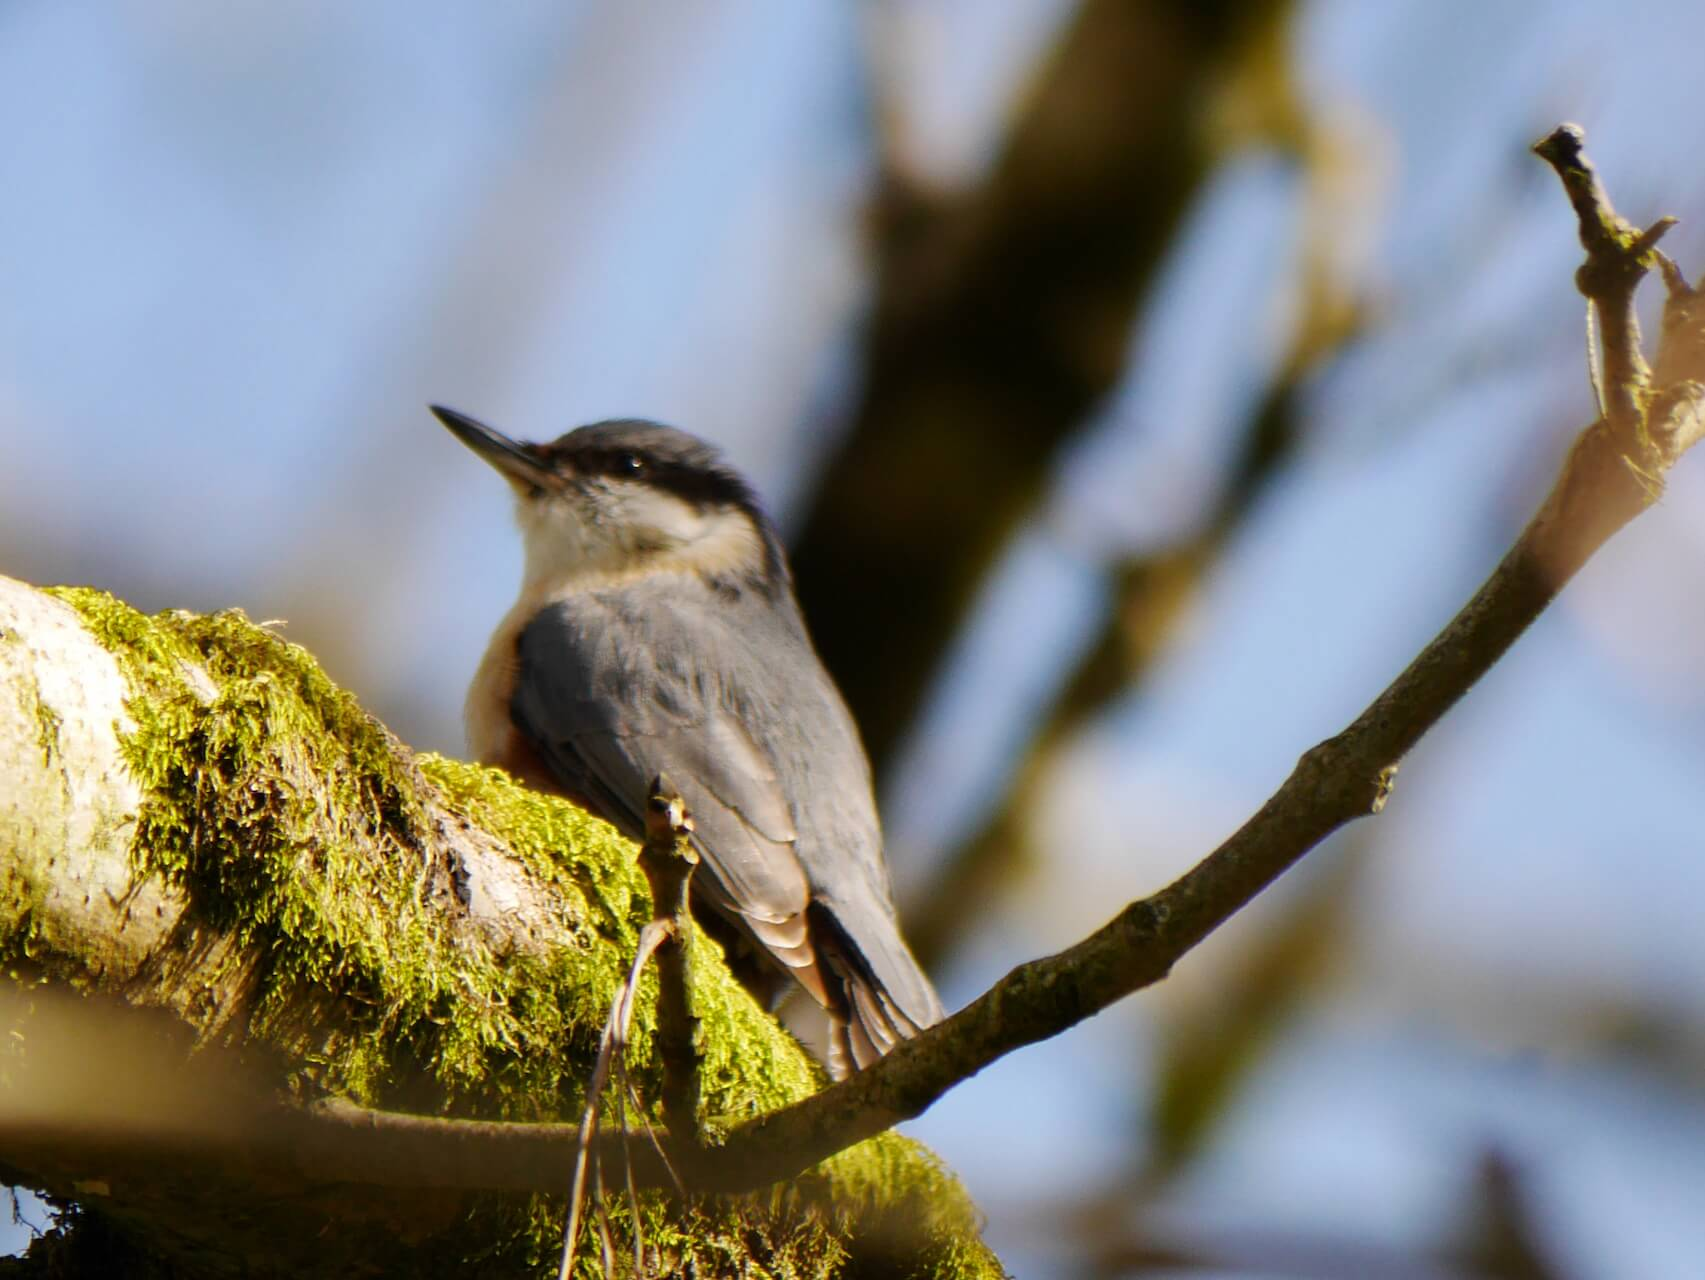 Nuthatch on a mossy tree branch